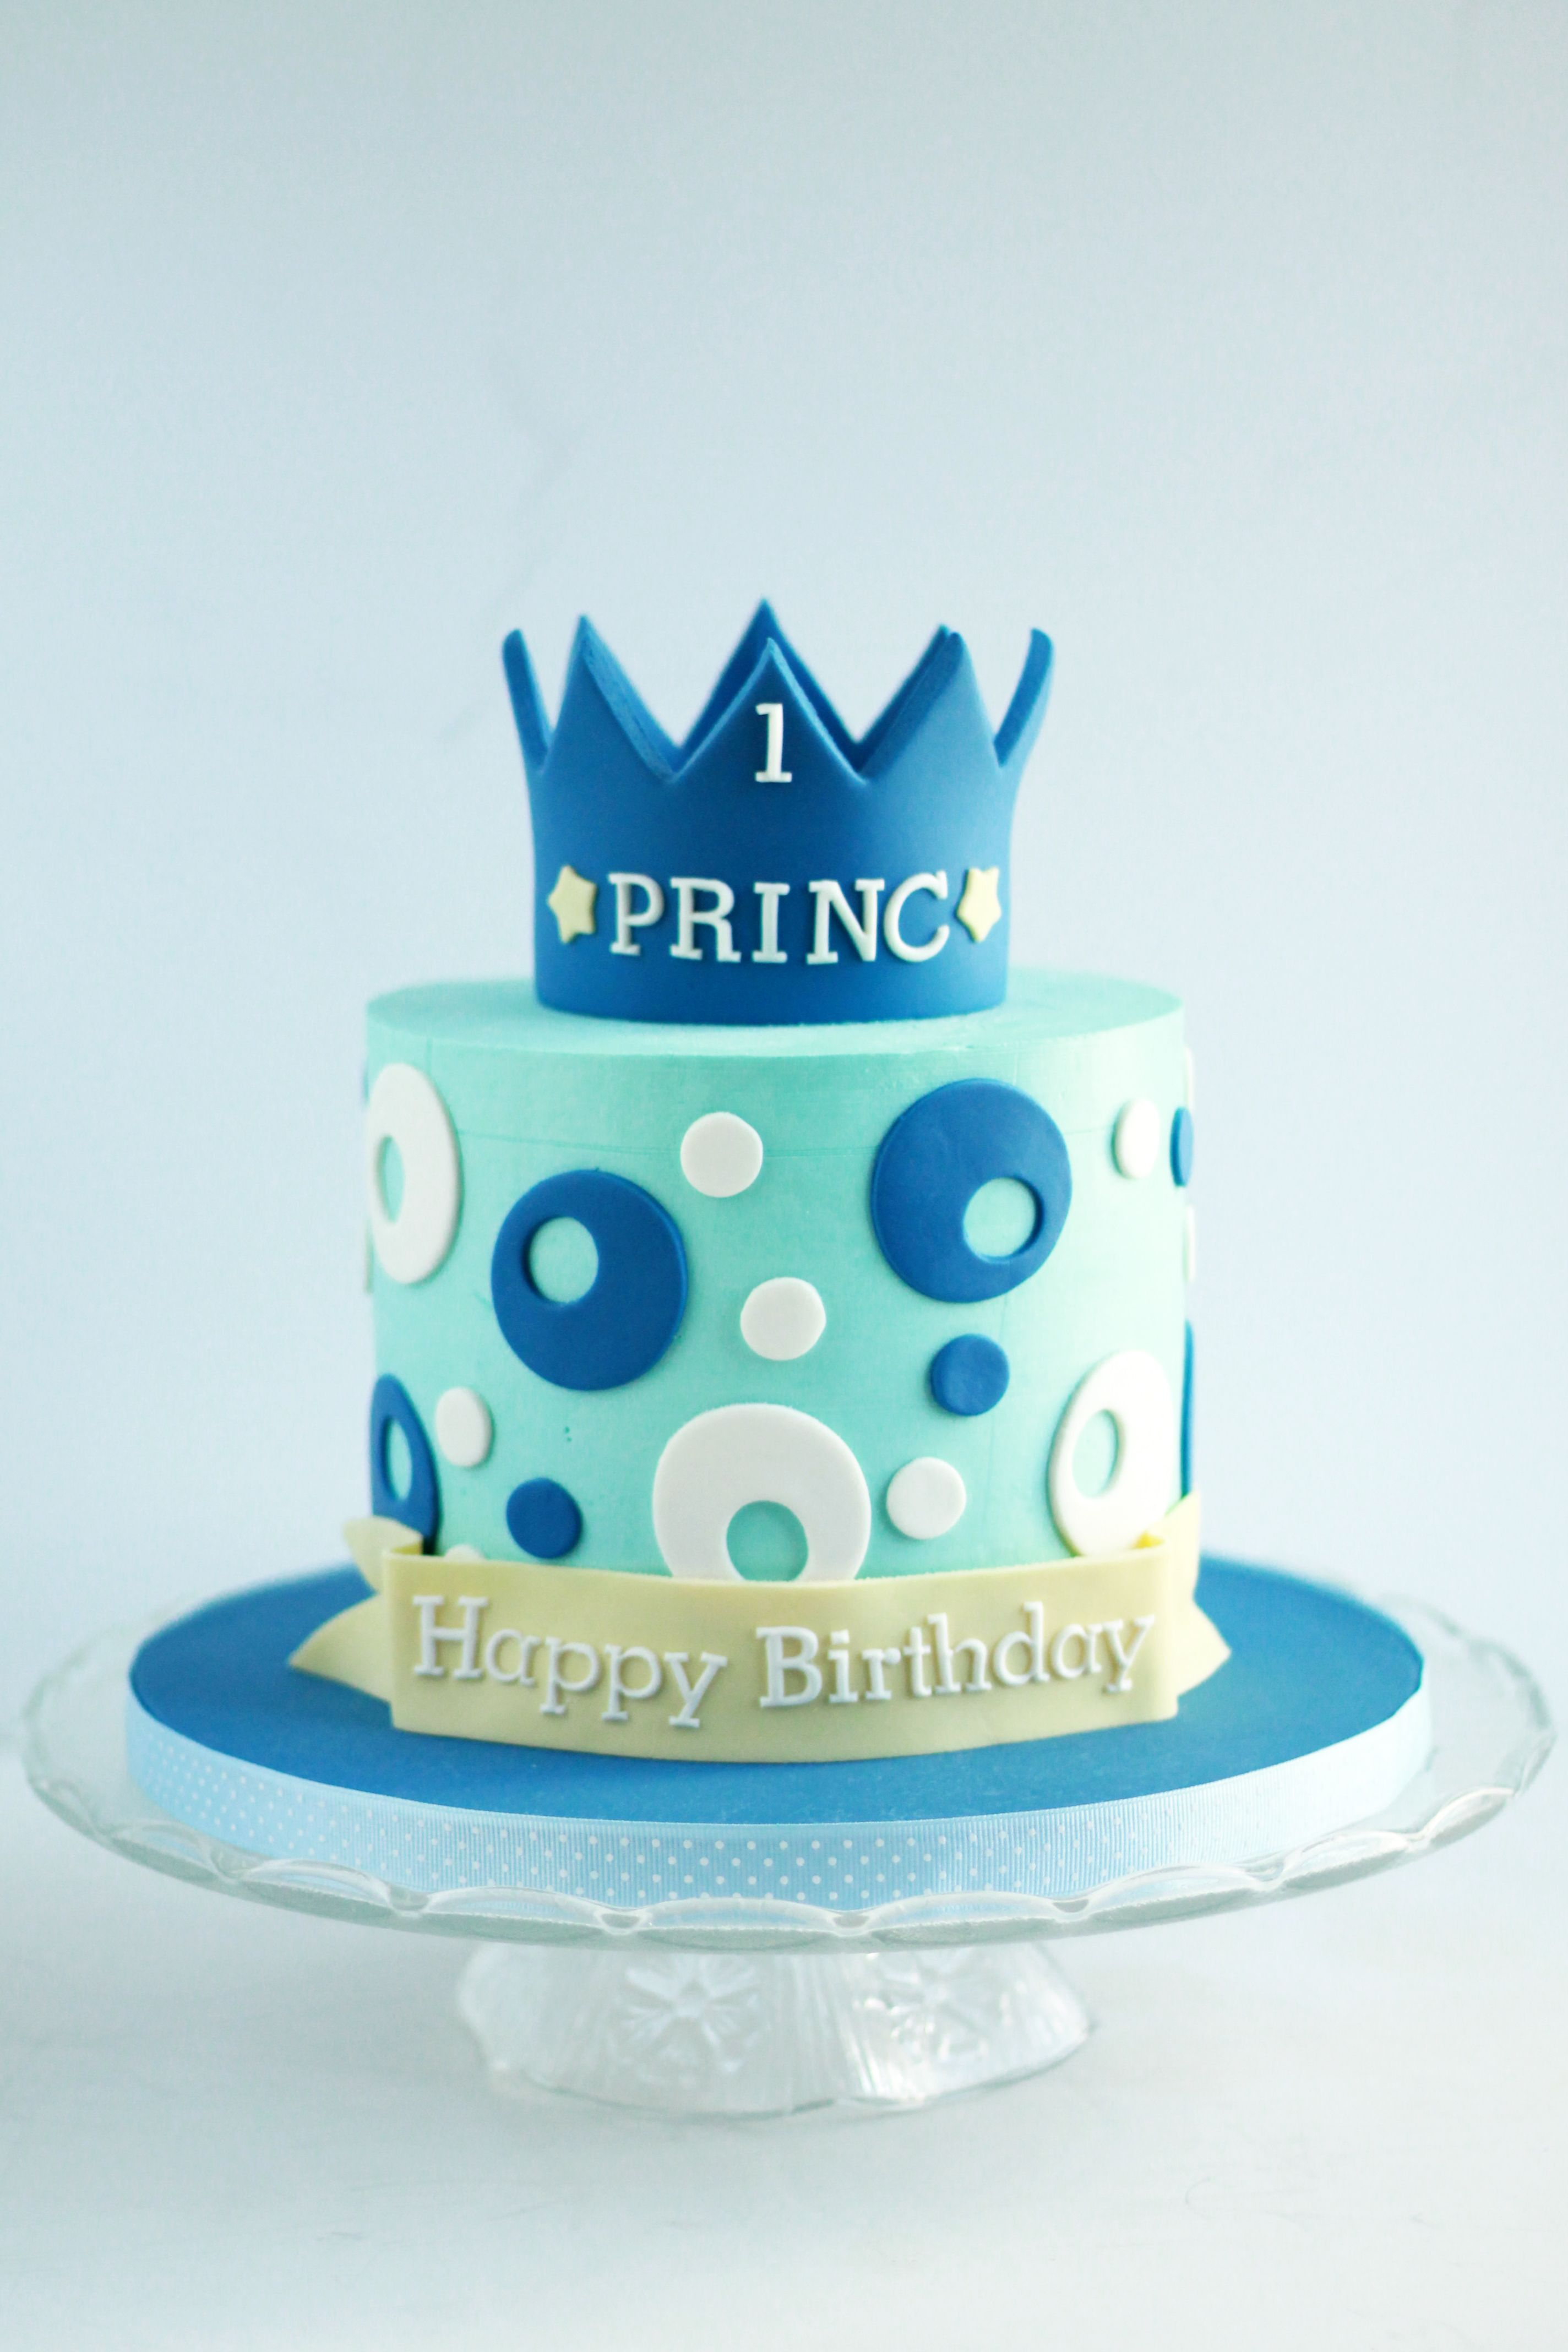 A Blue And White Polka Dot Cake With A Prince Crown For Baby Boy S